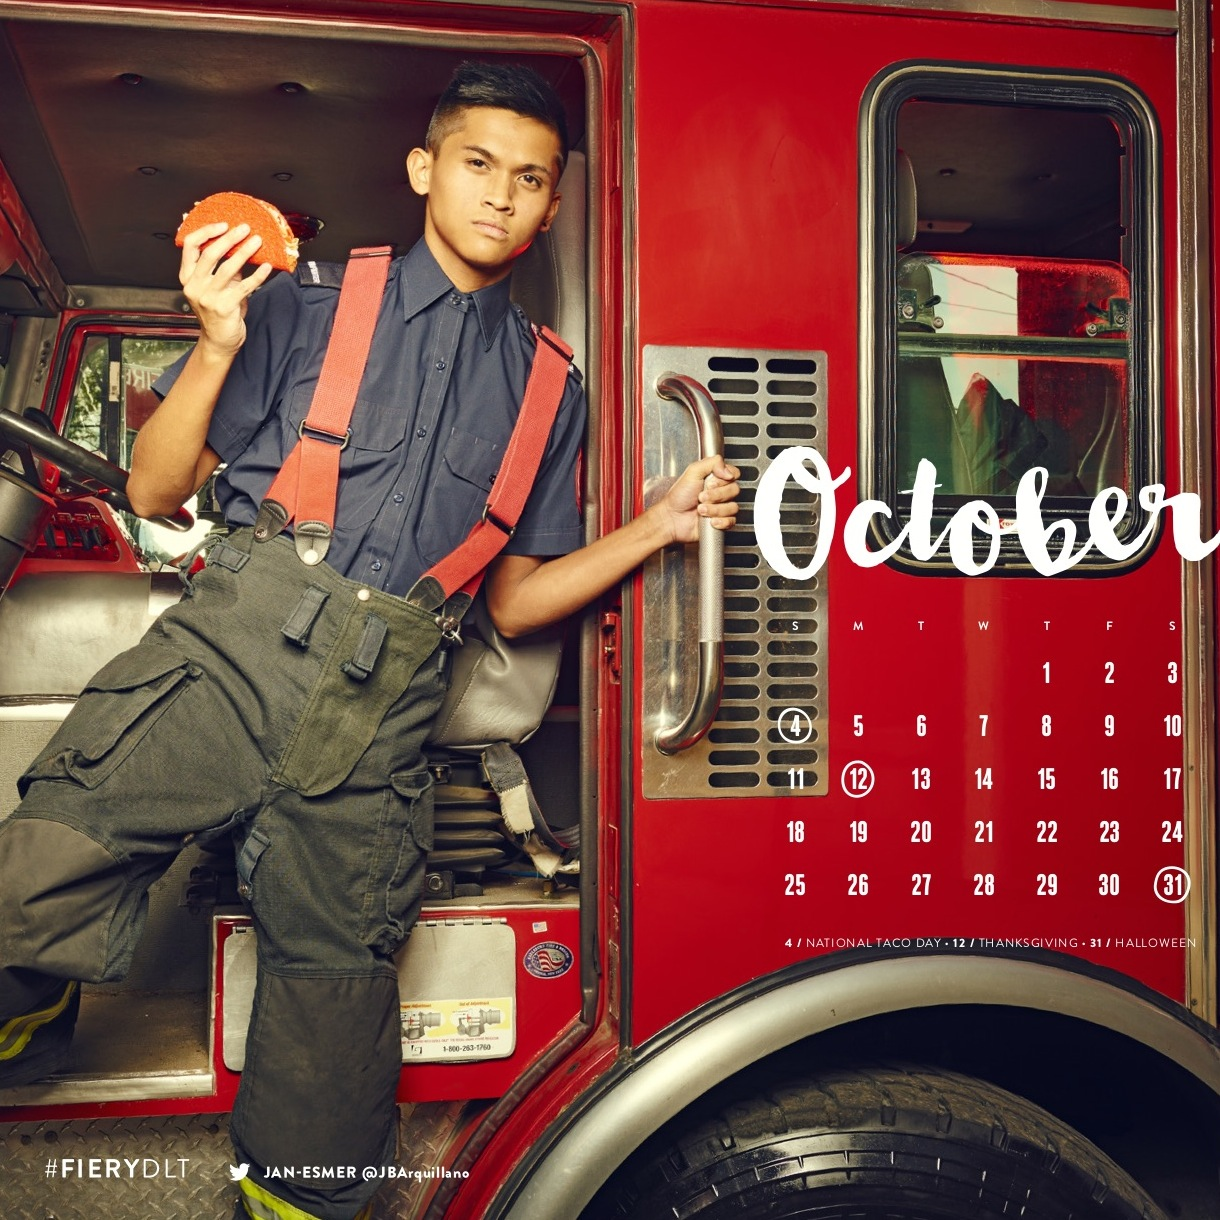 Look At This Taco Bell's 'Fiery' Dlt Firefighter Calendar Ideas And Designs